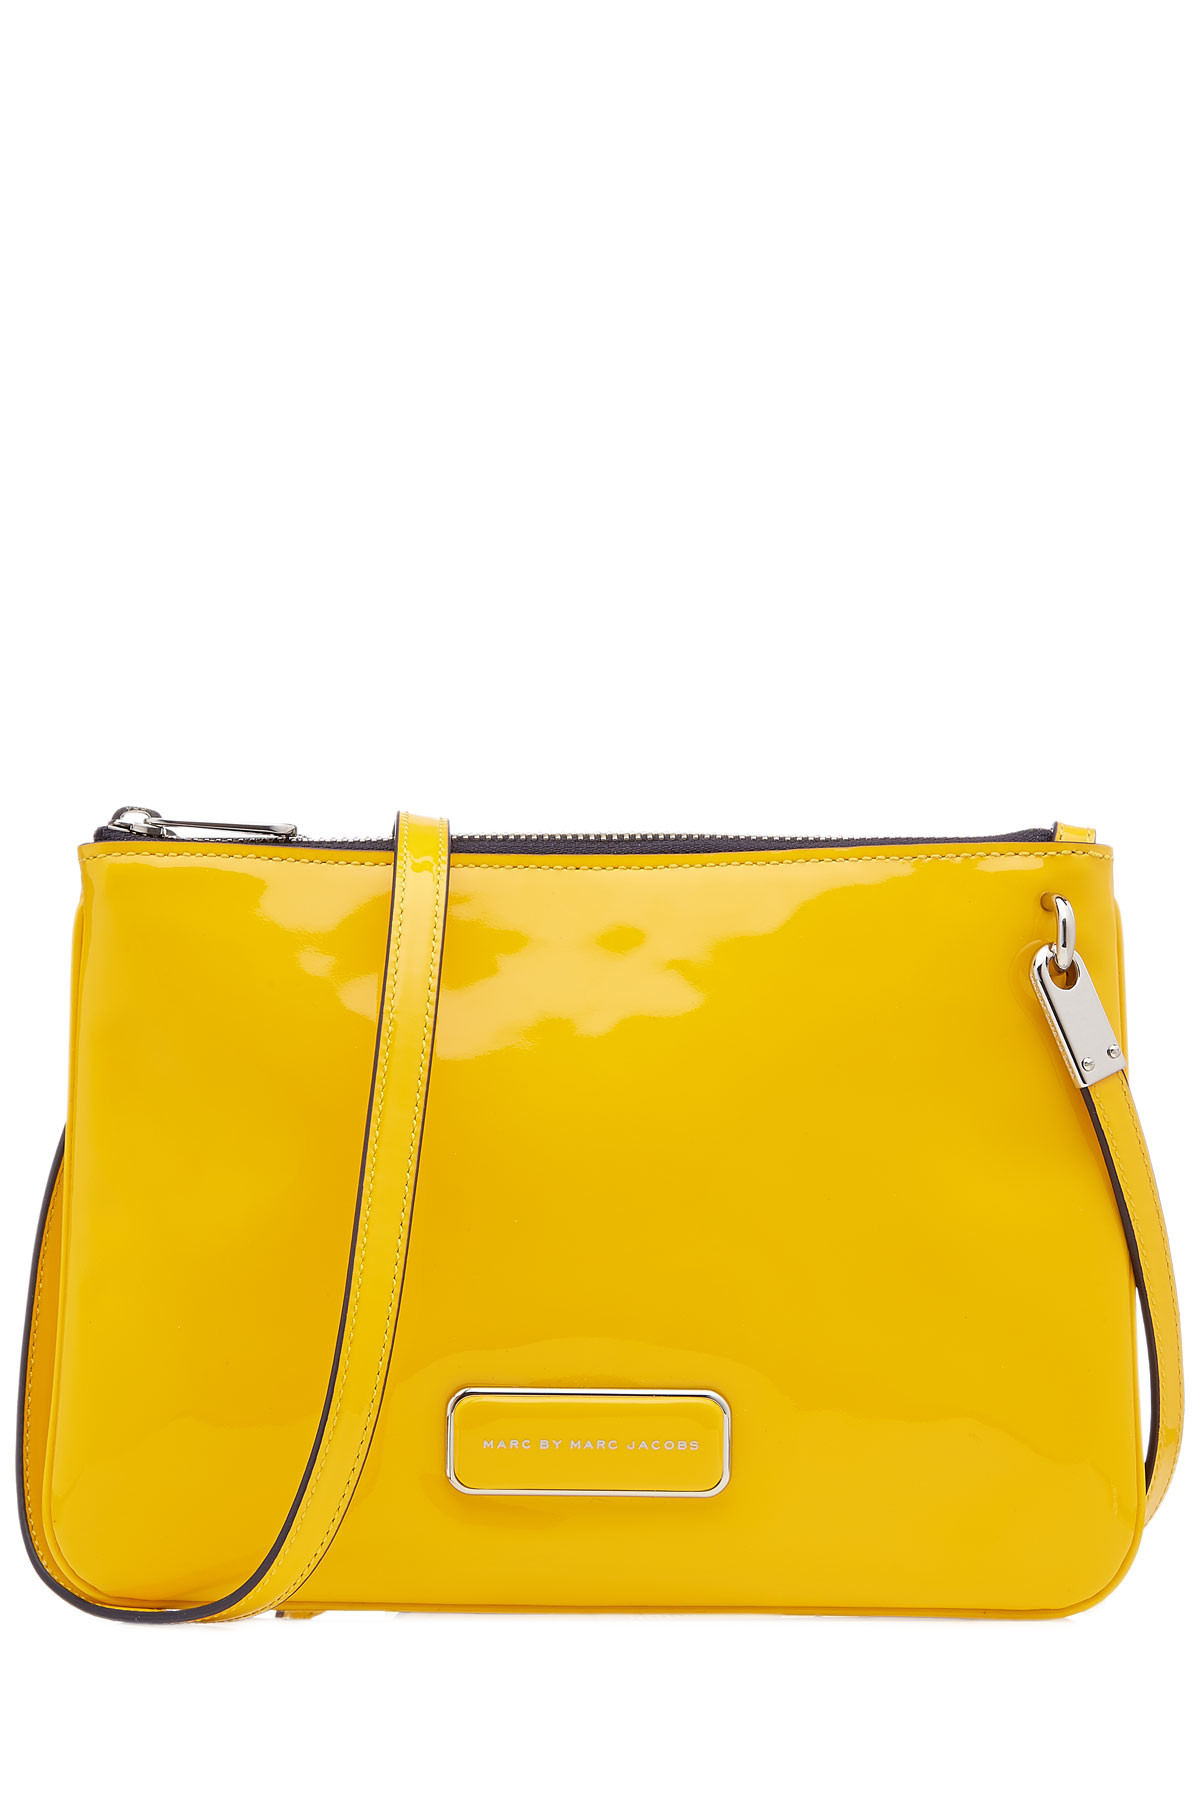 Marc by marc jacobs Double Percy Patent Leather Shoulder Bag ...